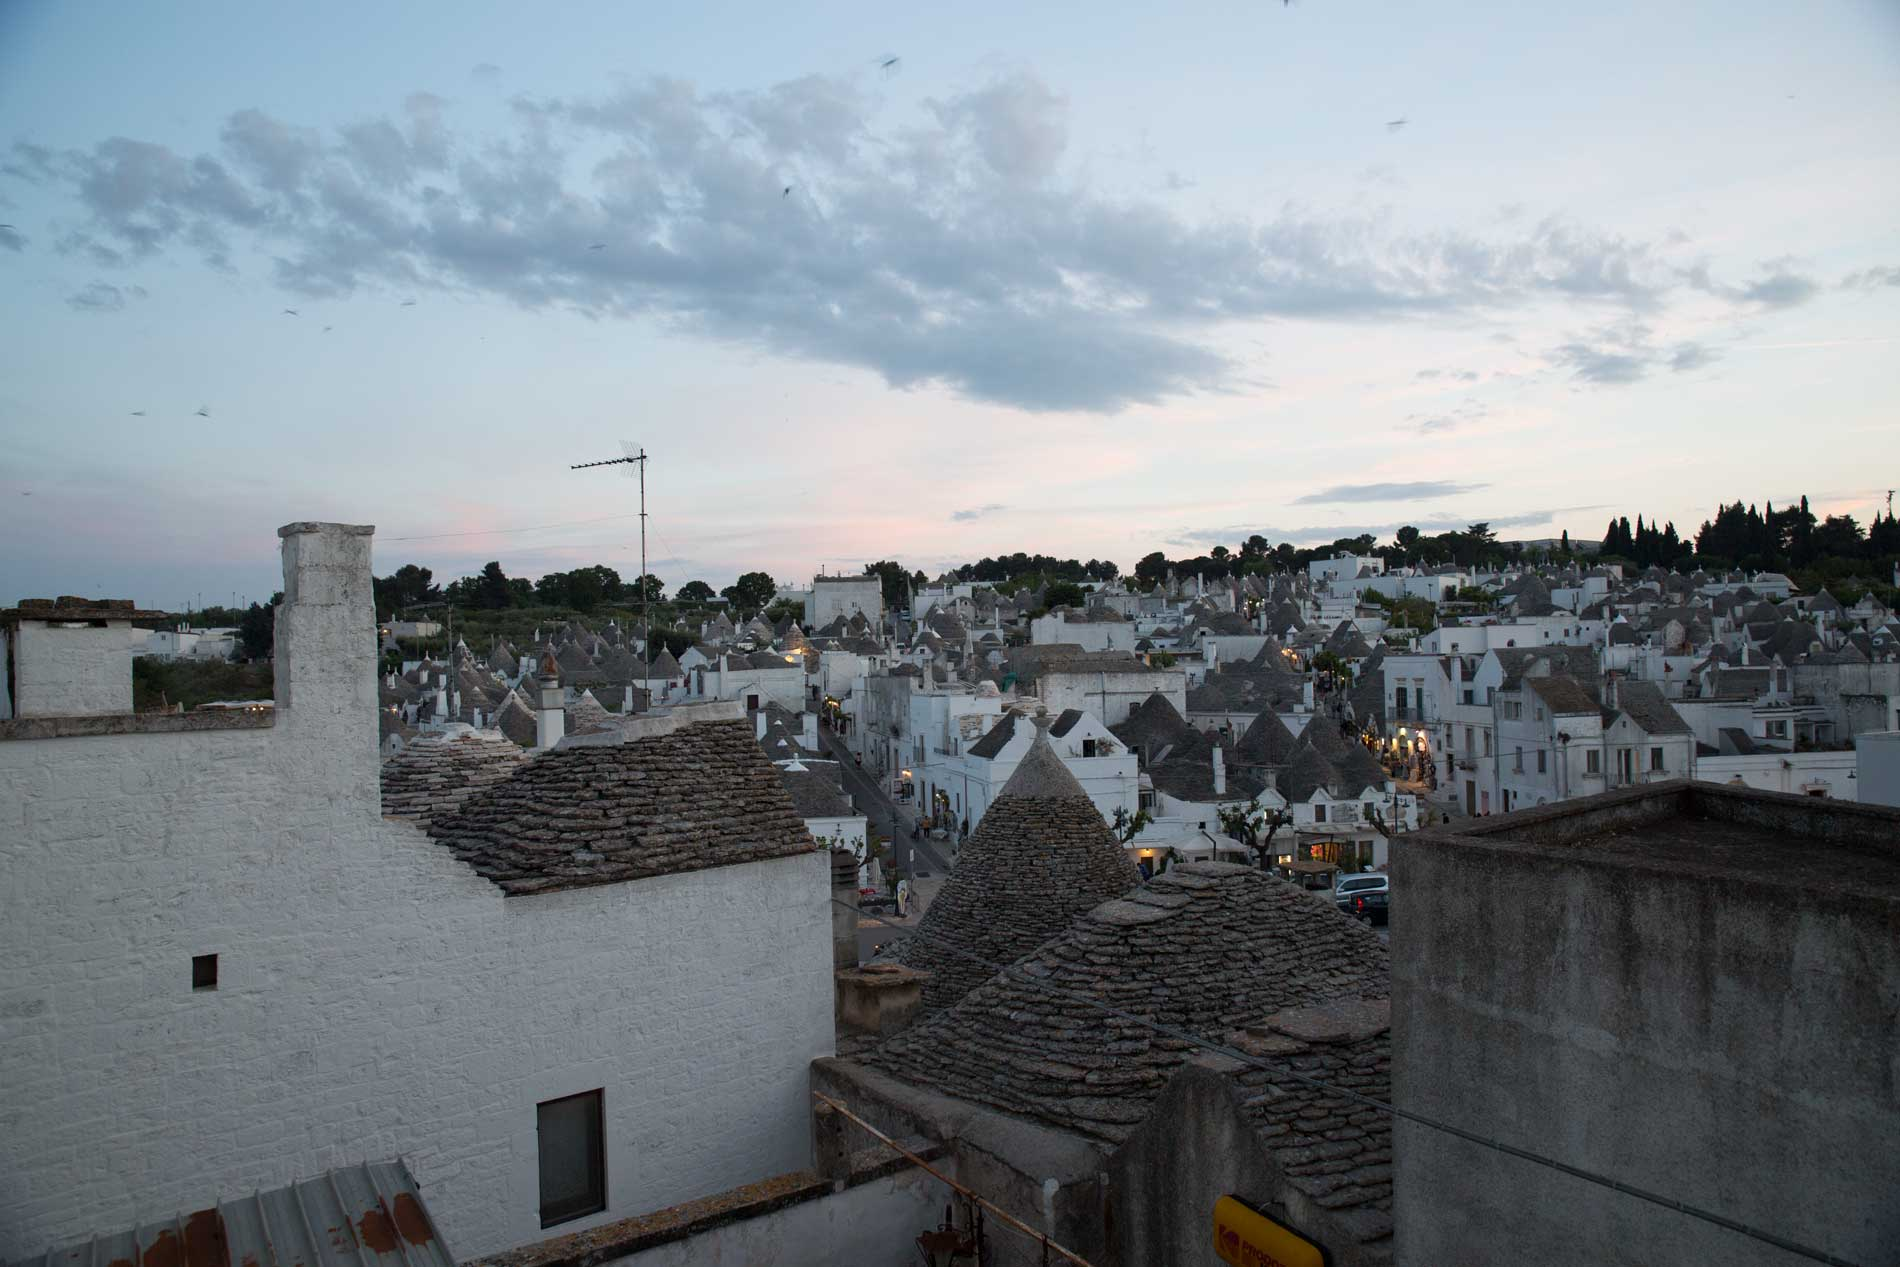 Alberobello at evening time. Photo by Francois